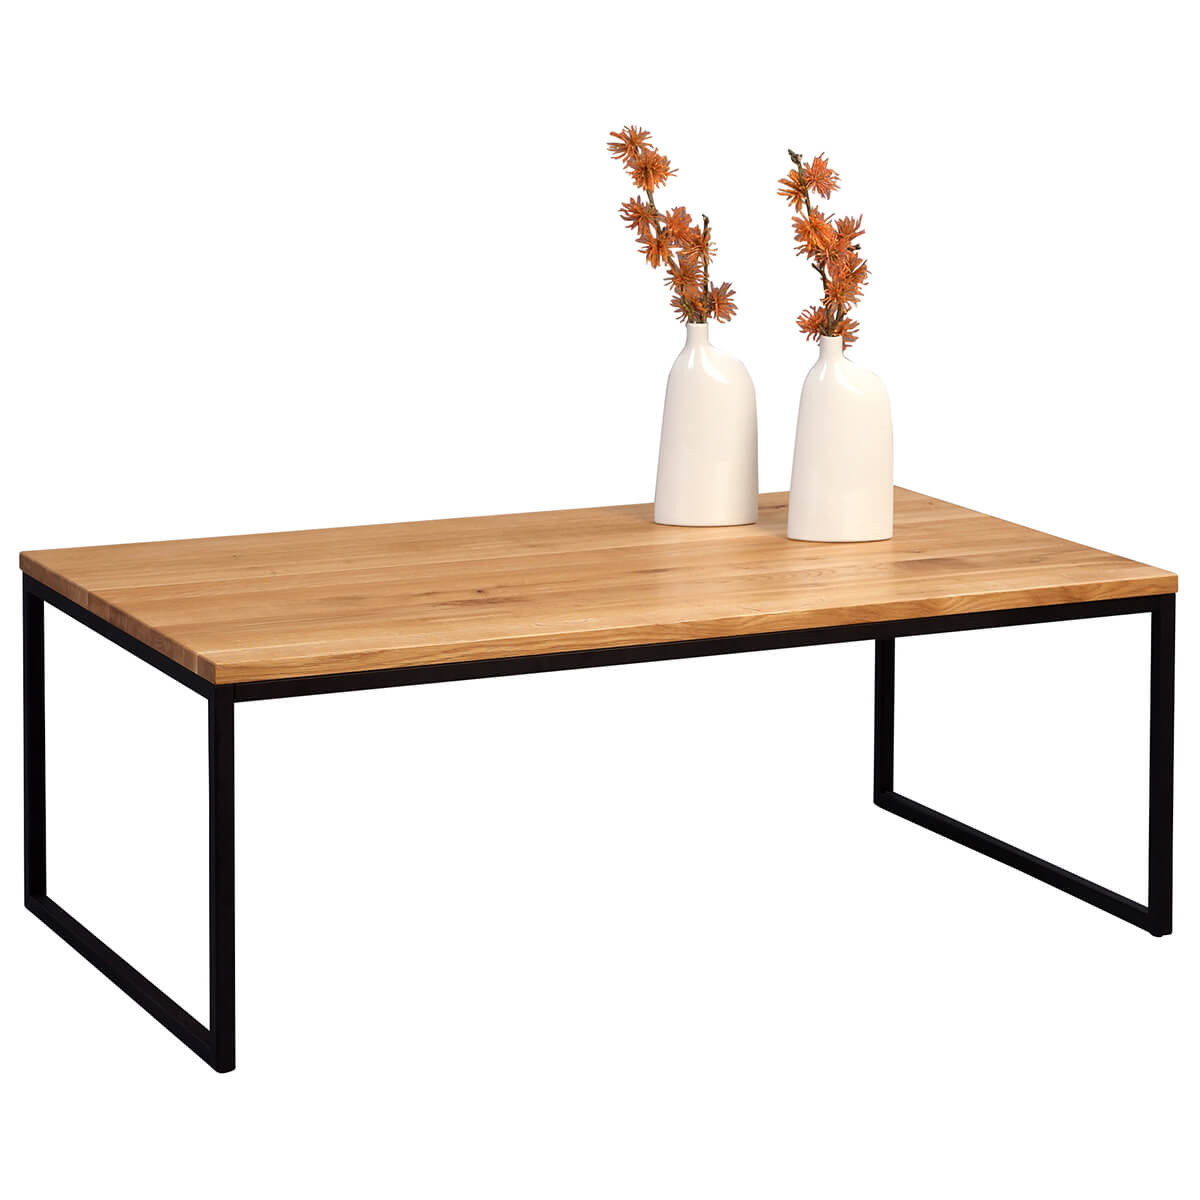 Musterring Couchtisch York M2 Kollektion - Salontafel Sira 2 | Furnidirect.nl